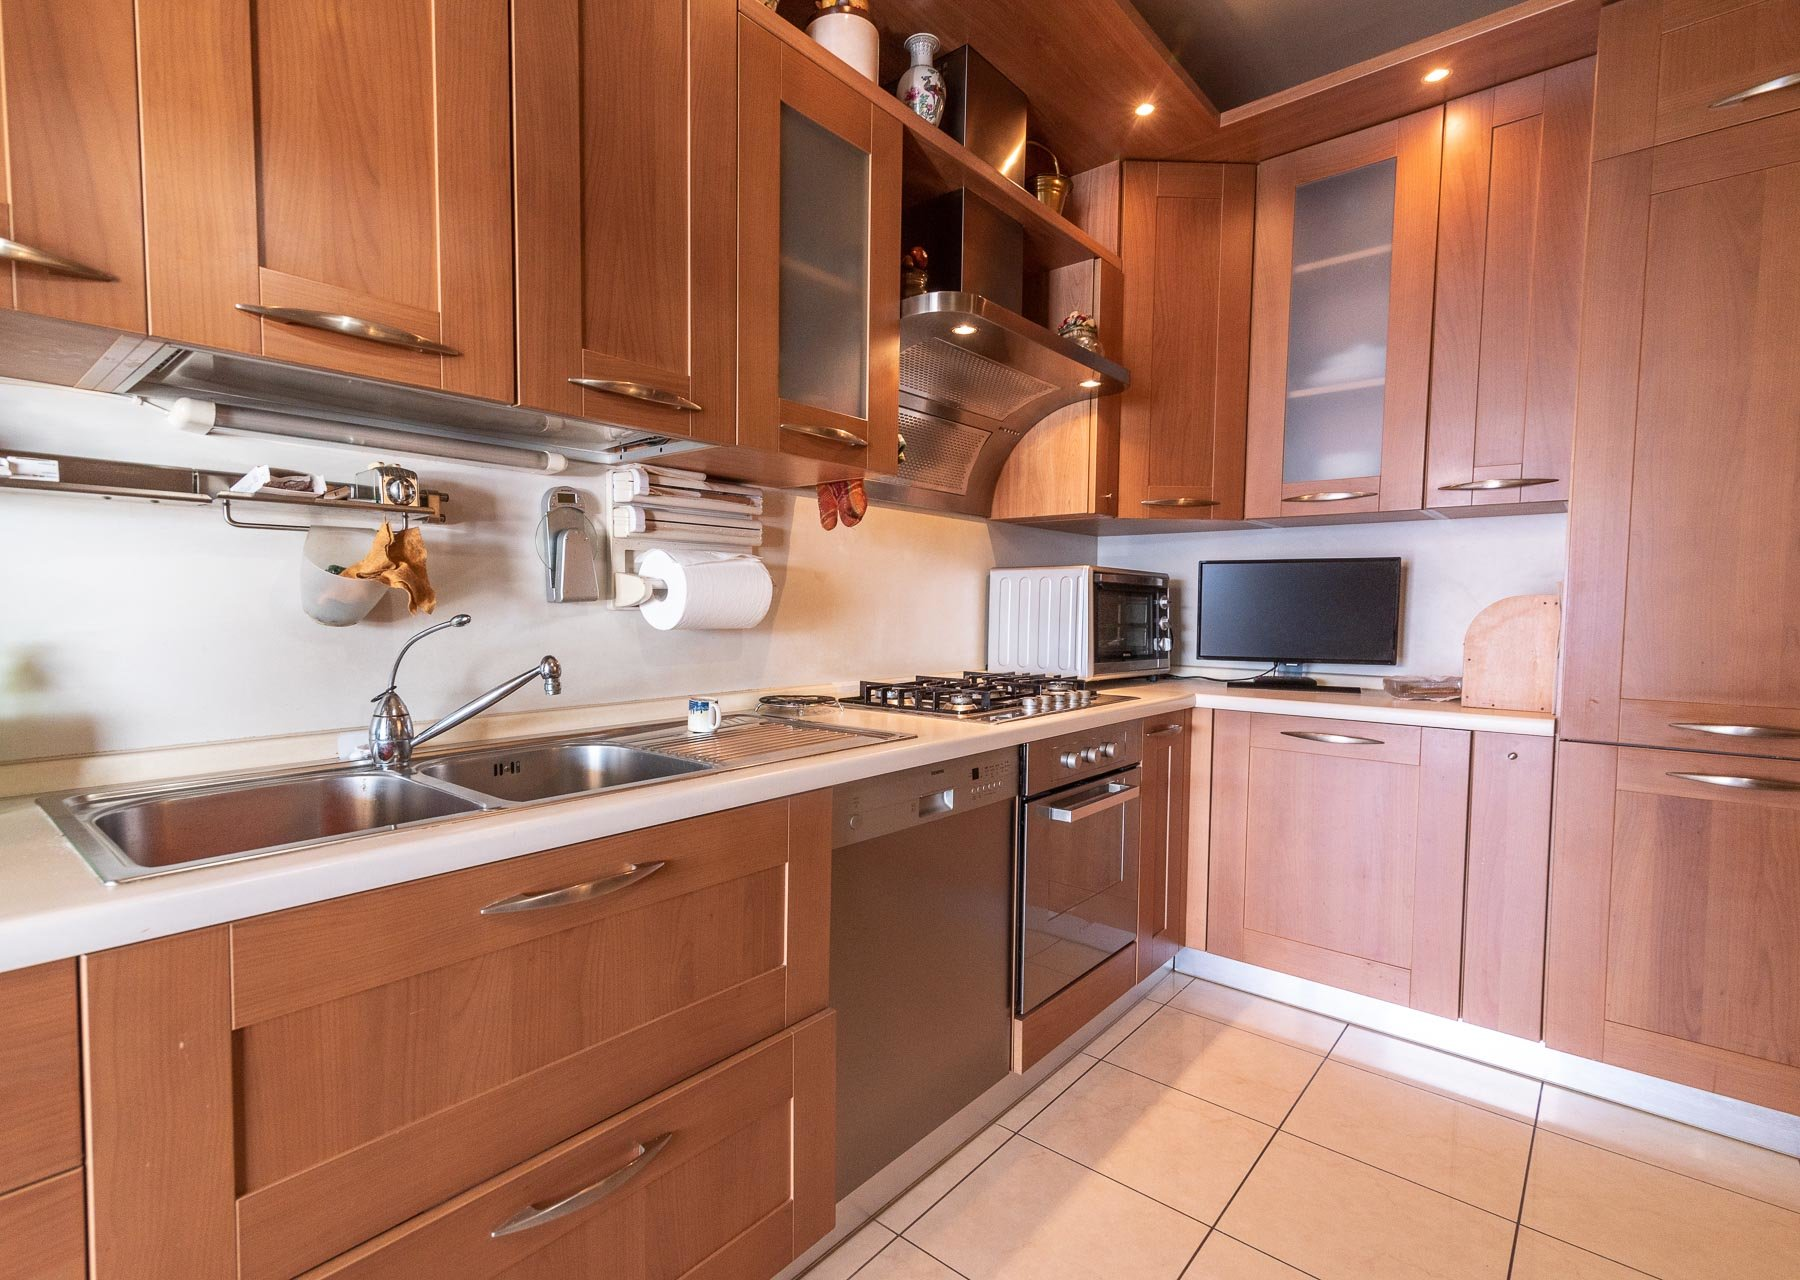 Modern villa with swimming pool for sale in Verbania - guest kitchen